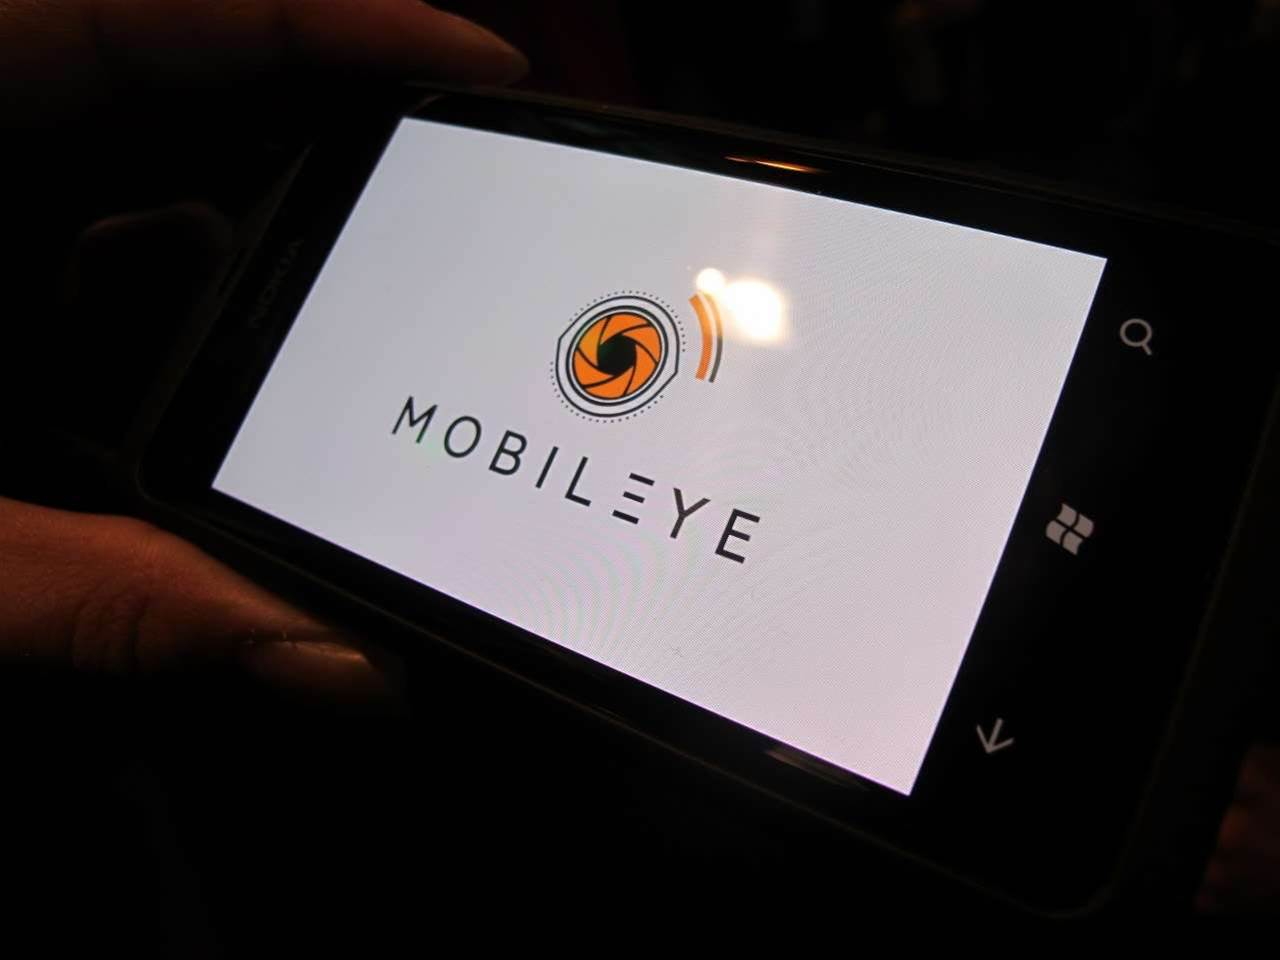 "<h2>Mobile Eye: Auckland University of Technology, New Zealand</h2>Team Mobile Eye from the Auckland University of Technology were the only Antipodeans to make it all the way to the grand finals. As its name implies, 'Mobile Eye' enables visually impaired people to ""see"" via their mobile phones. The app is able to verbally describe an individual's surroundings, including specific object colours and even written text.<br /> During a demo, the app correctly read our name tag aloud and was able to identify a large spectrum of different colours."